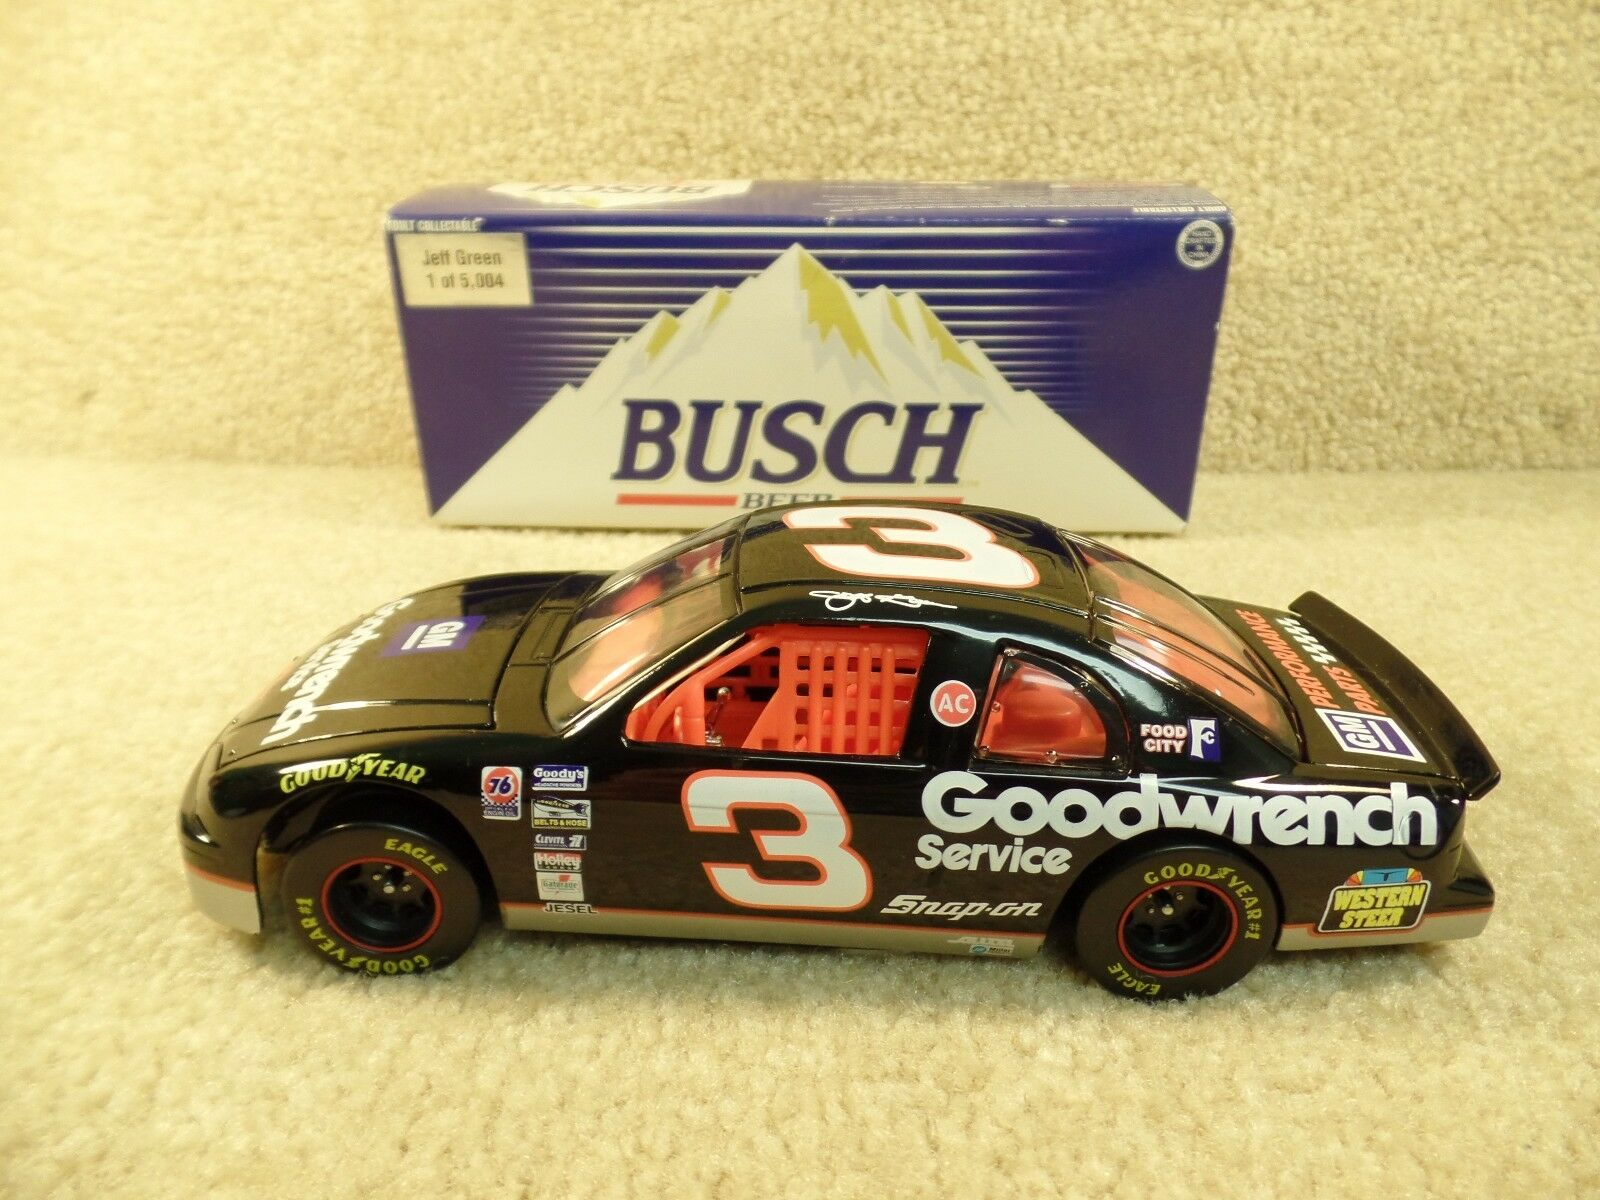 Used 1995 Action 1 24 Diecast NASCAR Jeff Grün Goodwrench Western Steer  3